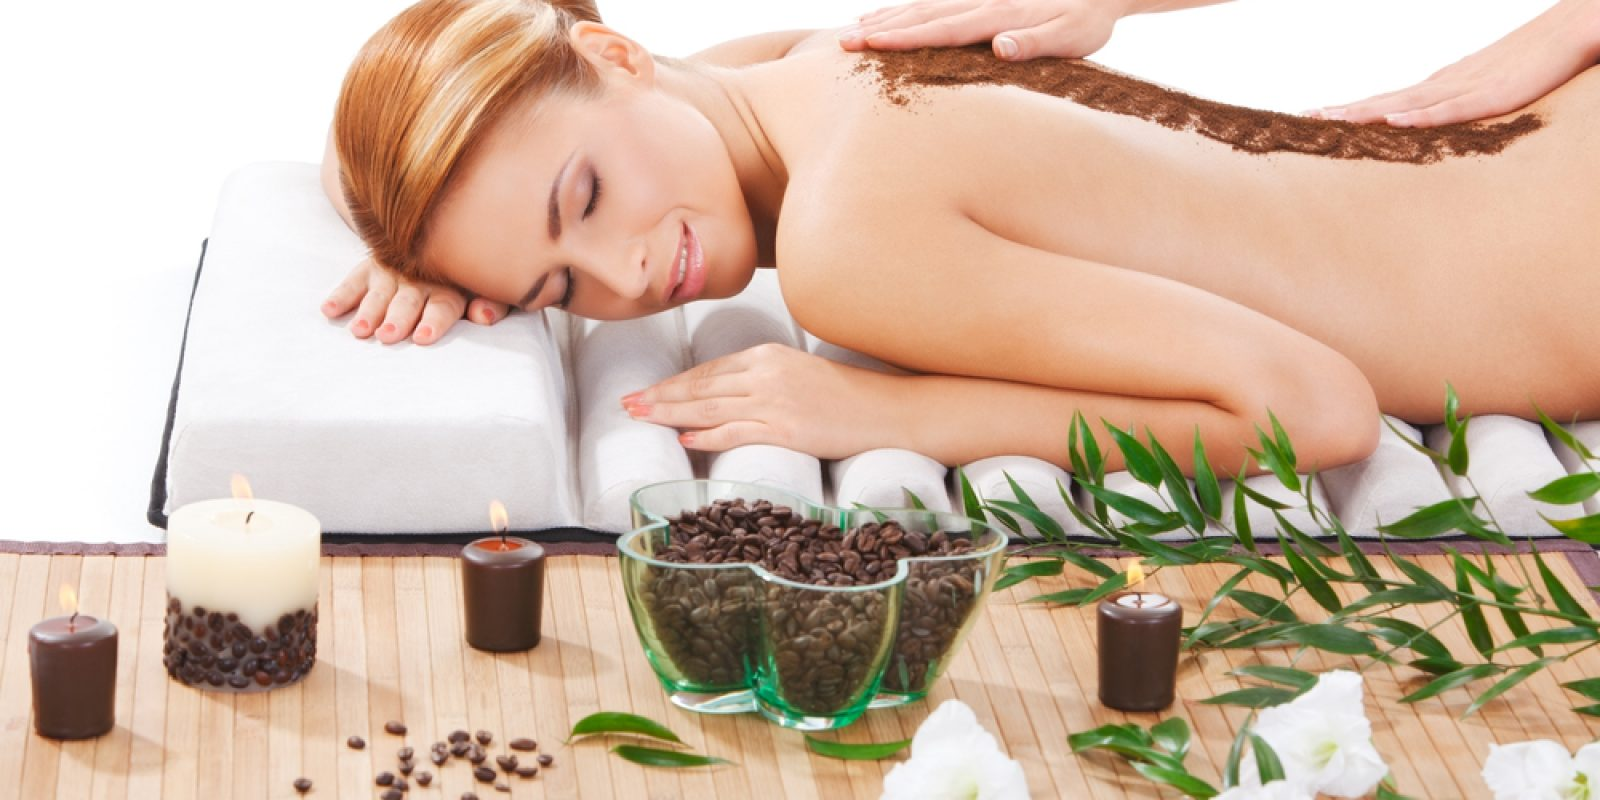 What is Coffee Scrub Good for?